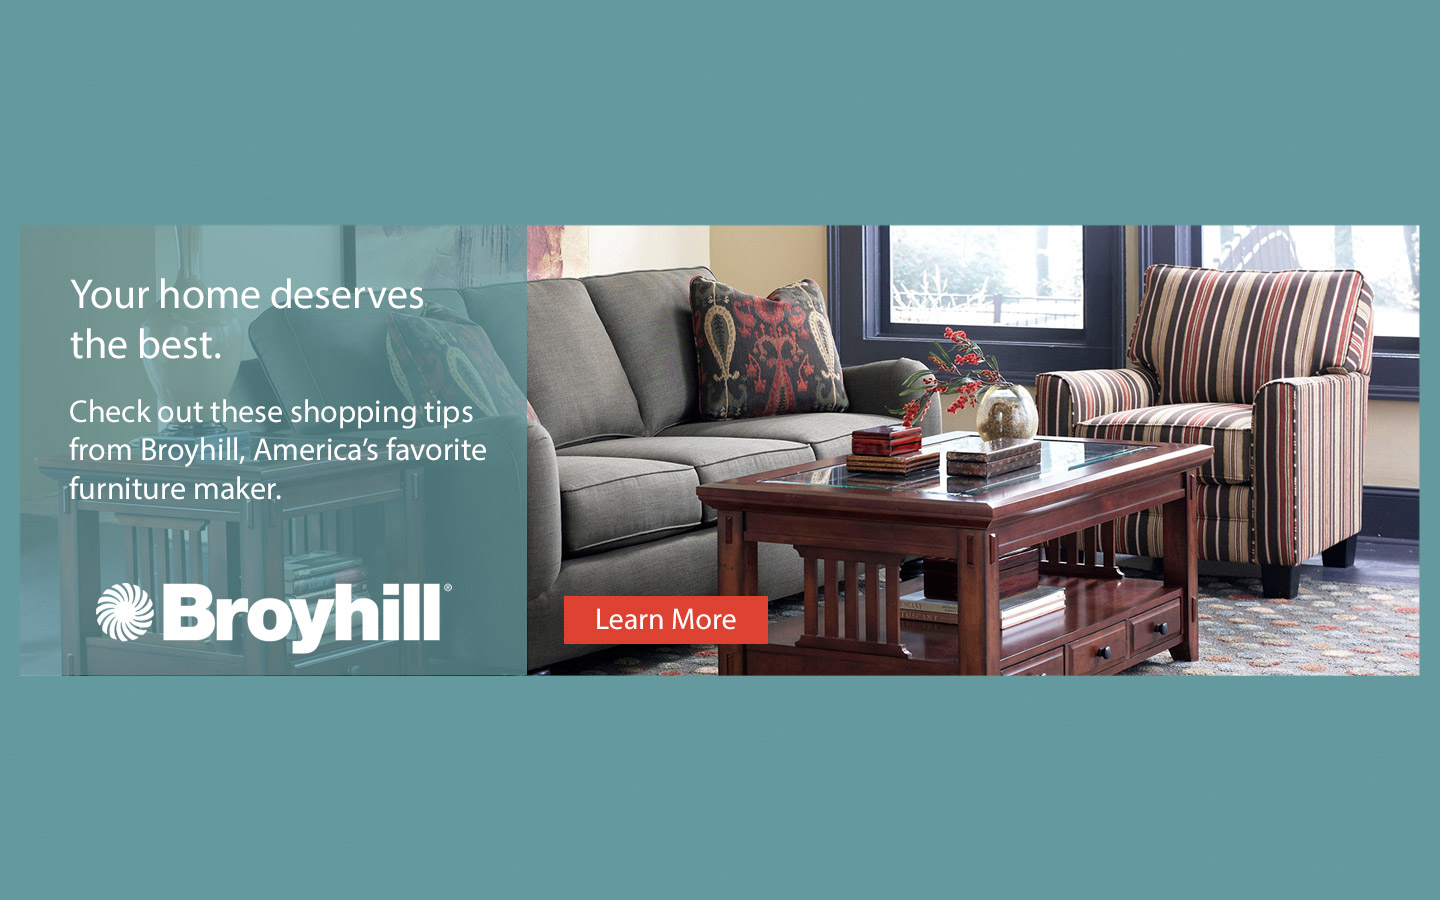 Broyhill Wood And Upholstery Shopping Tips Q2 2017 ...